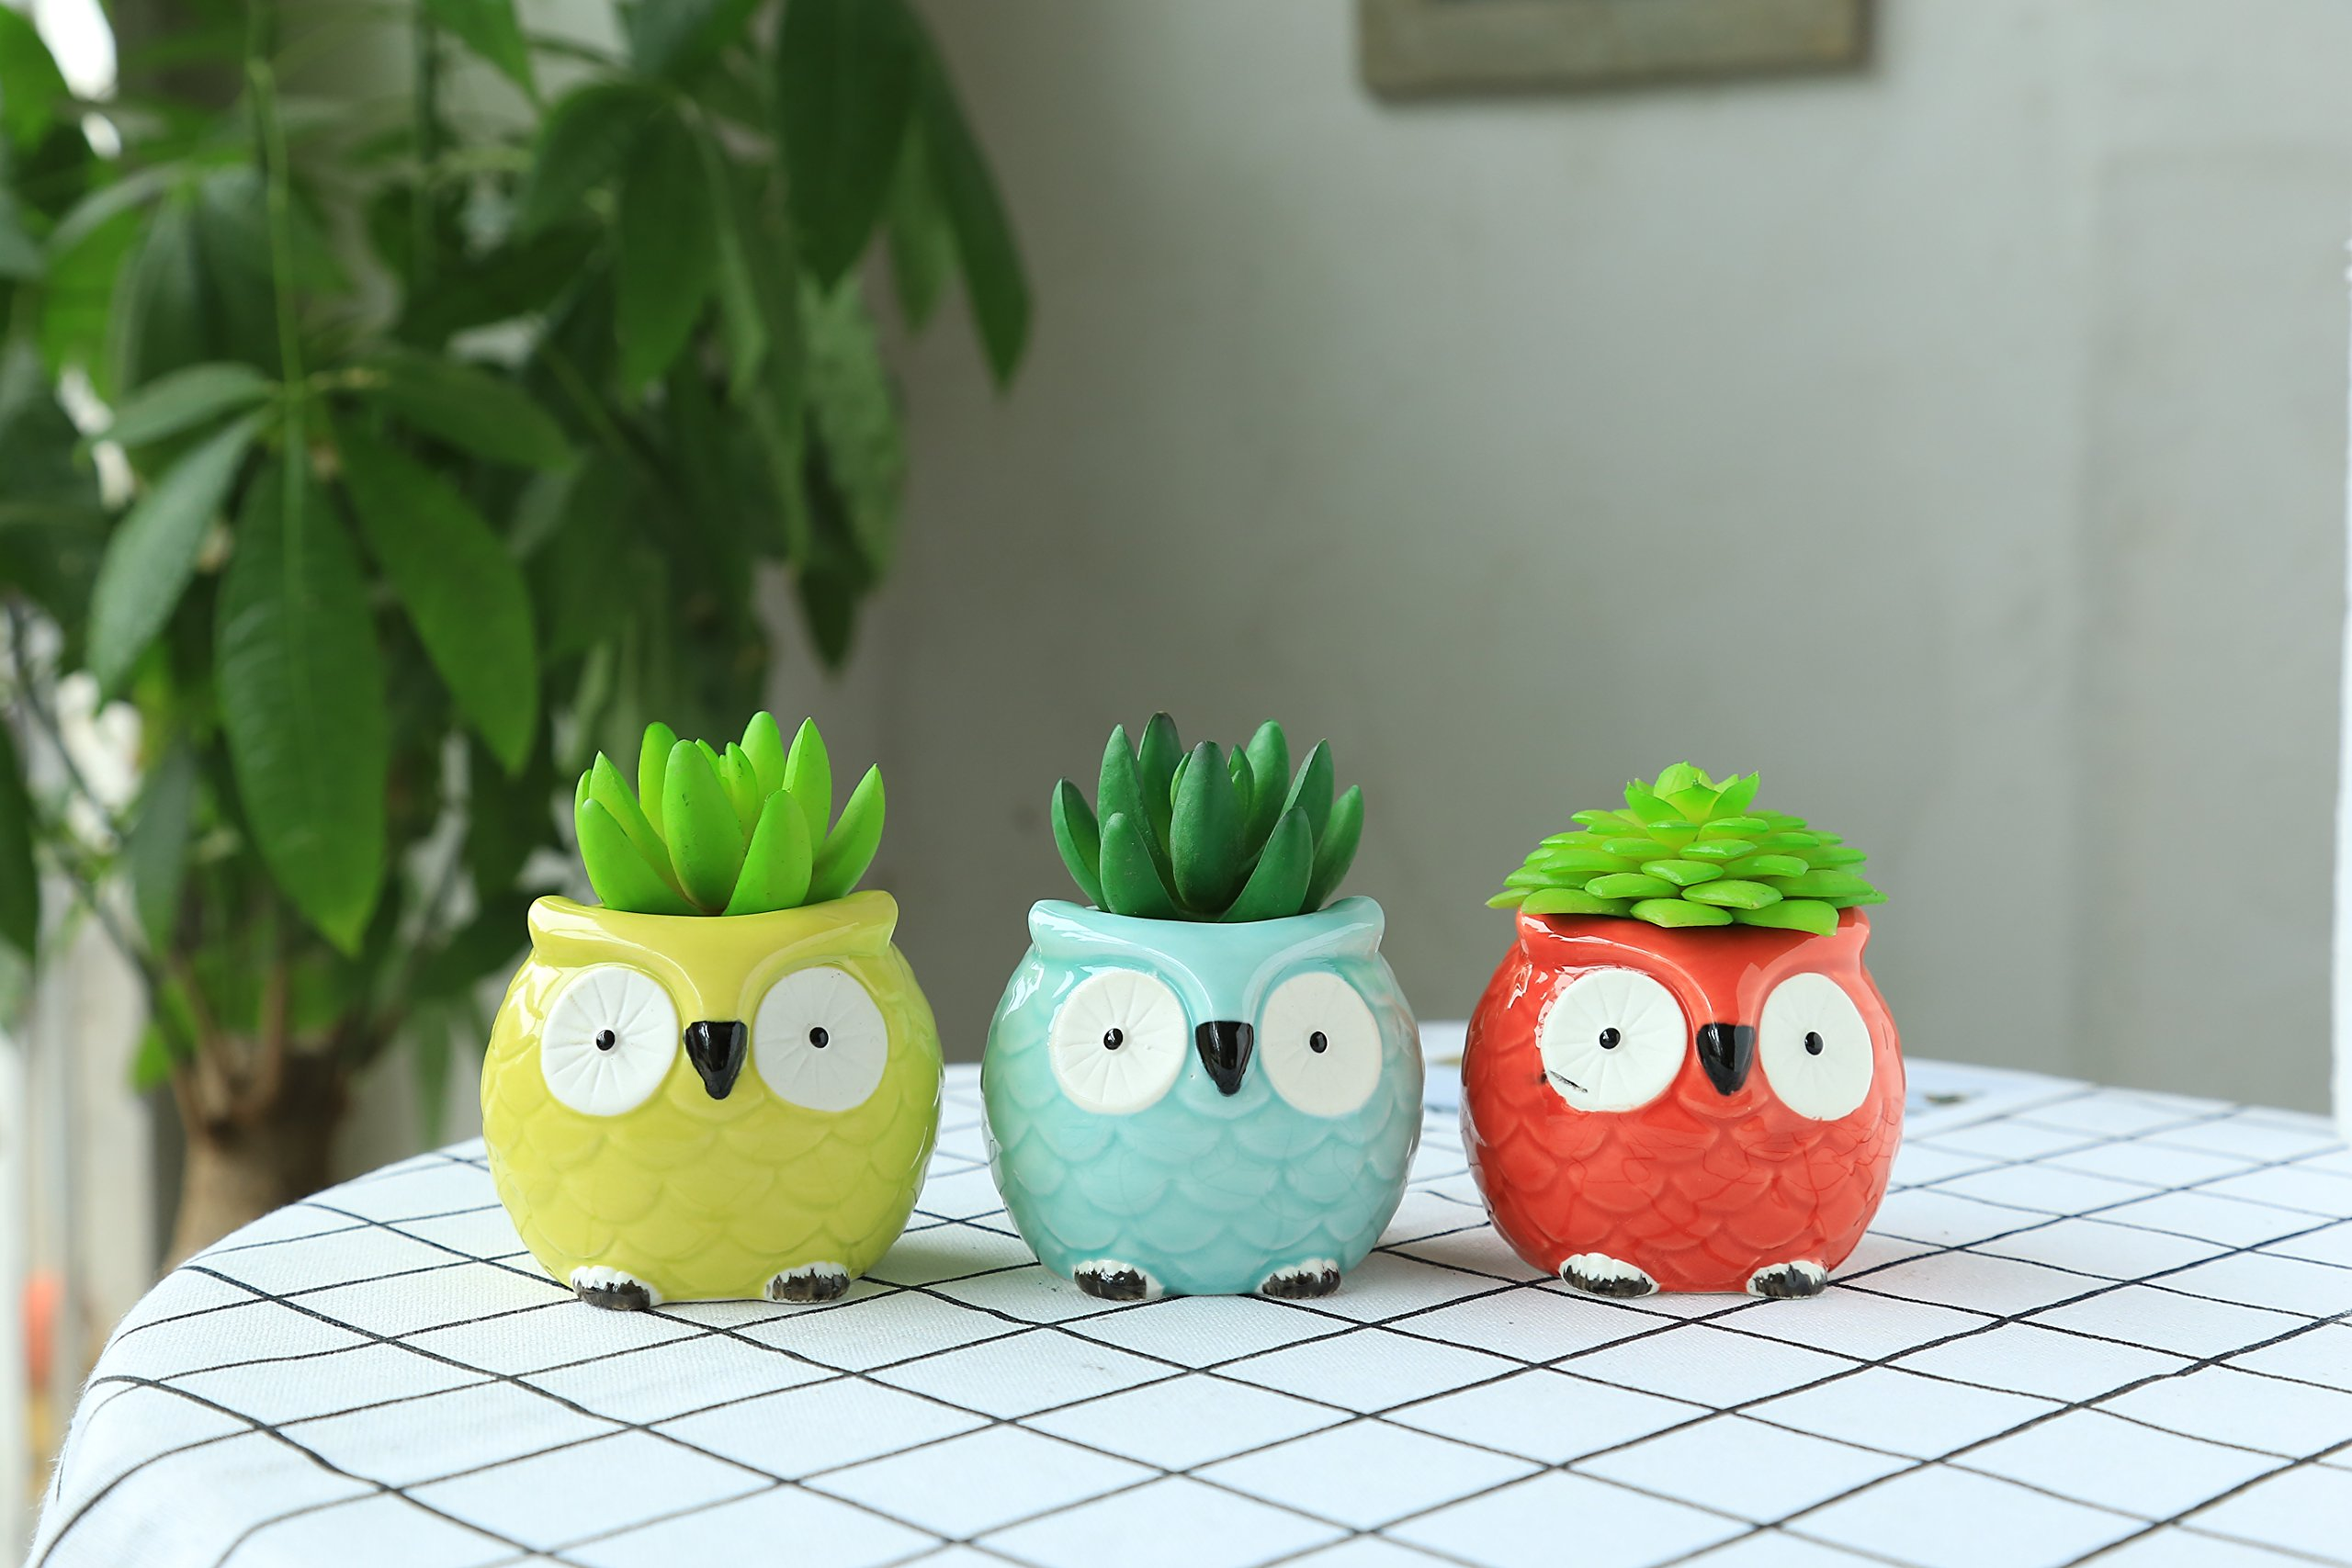 PONTE COLLECTION Succulent Pot Ceramic Owl Flower Planter Pot Handmade Mini Small Flower & Herb Pot Cactus Plant Pot Colorful 3-Pcs (Small Round Eyes) by PONTE COLLECTION